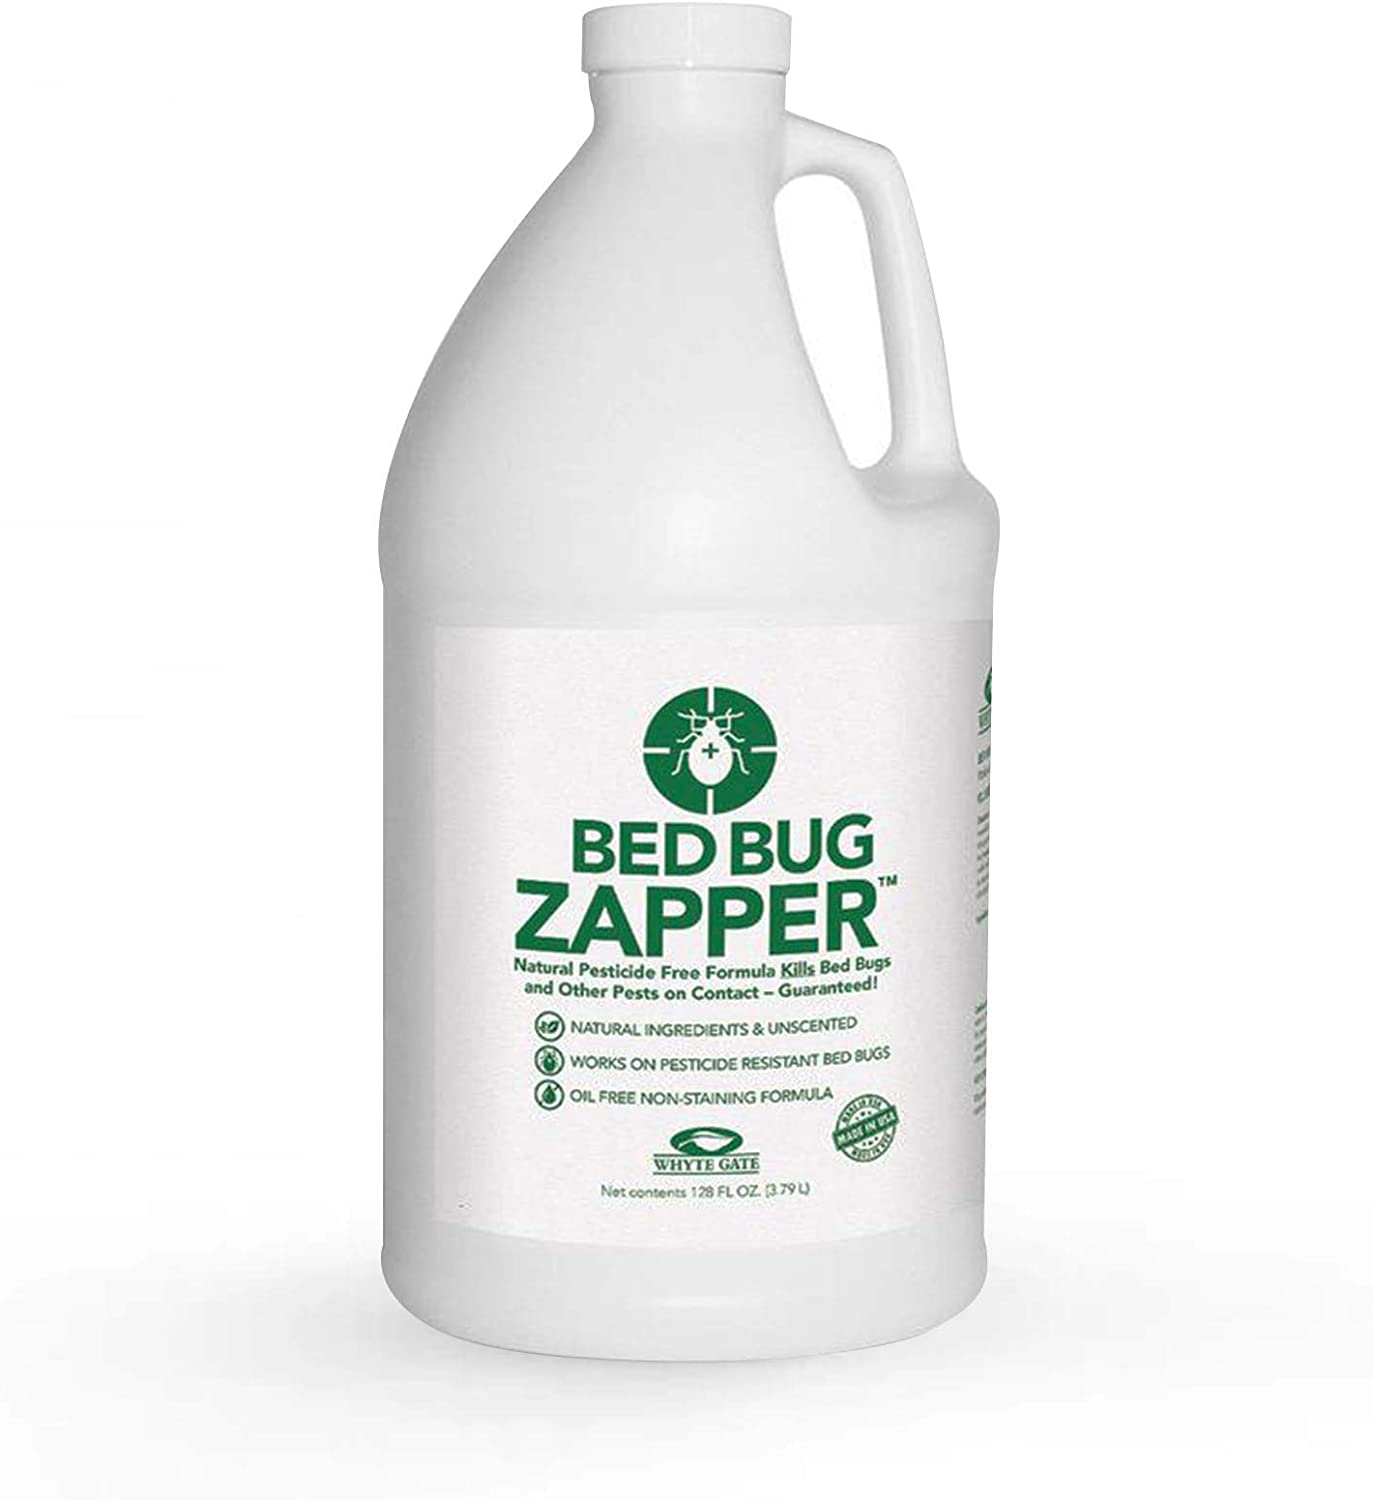 Whyte Gate Bed Bug Zapper, Natural Bed Bug Spray, Dust Mite and Flea Killer Spray for Home, Kills On Contact, Stain & Odor Free, 1 Gallon